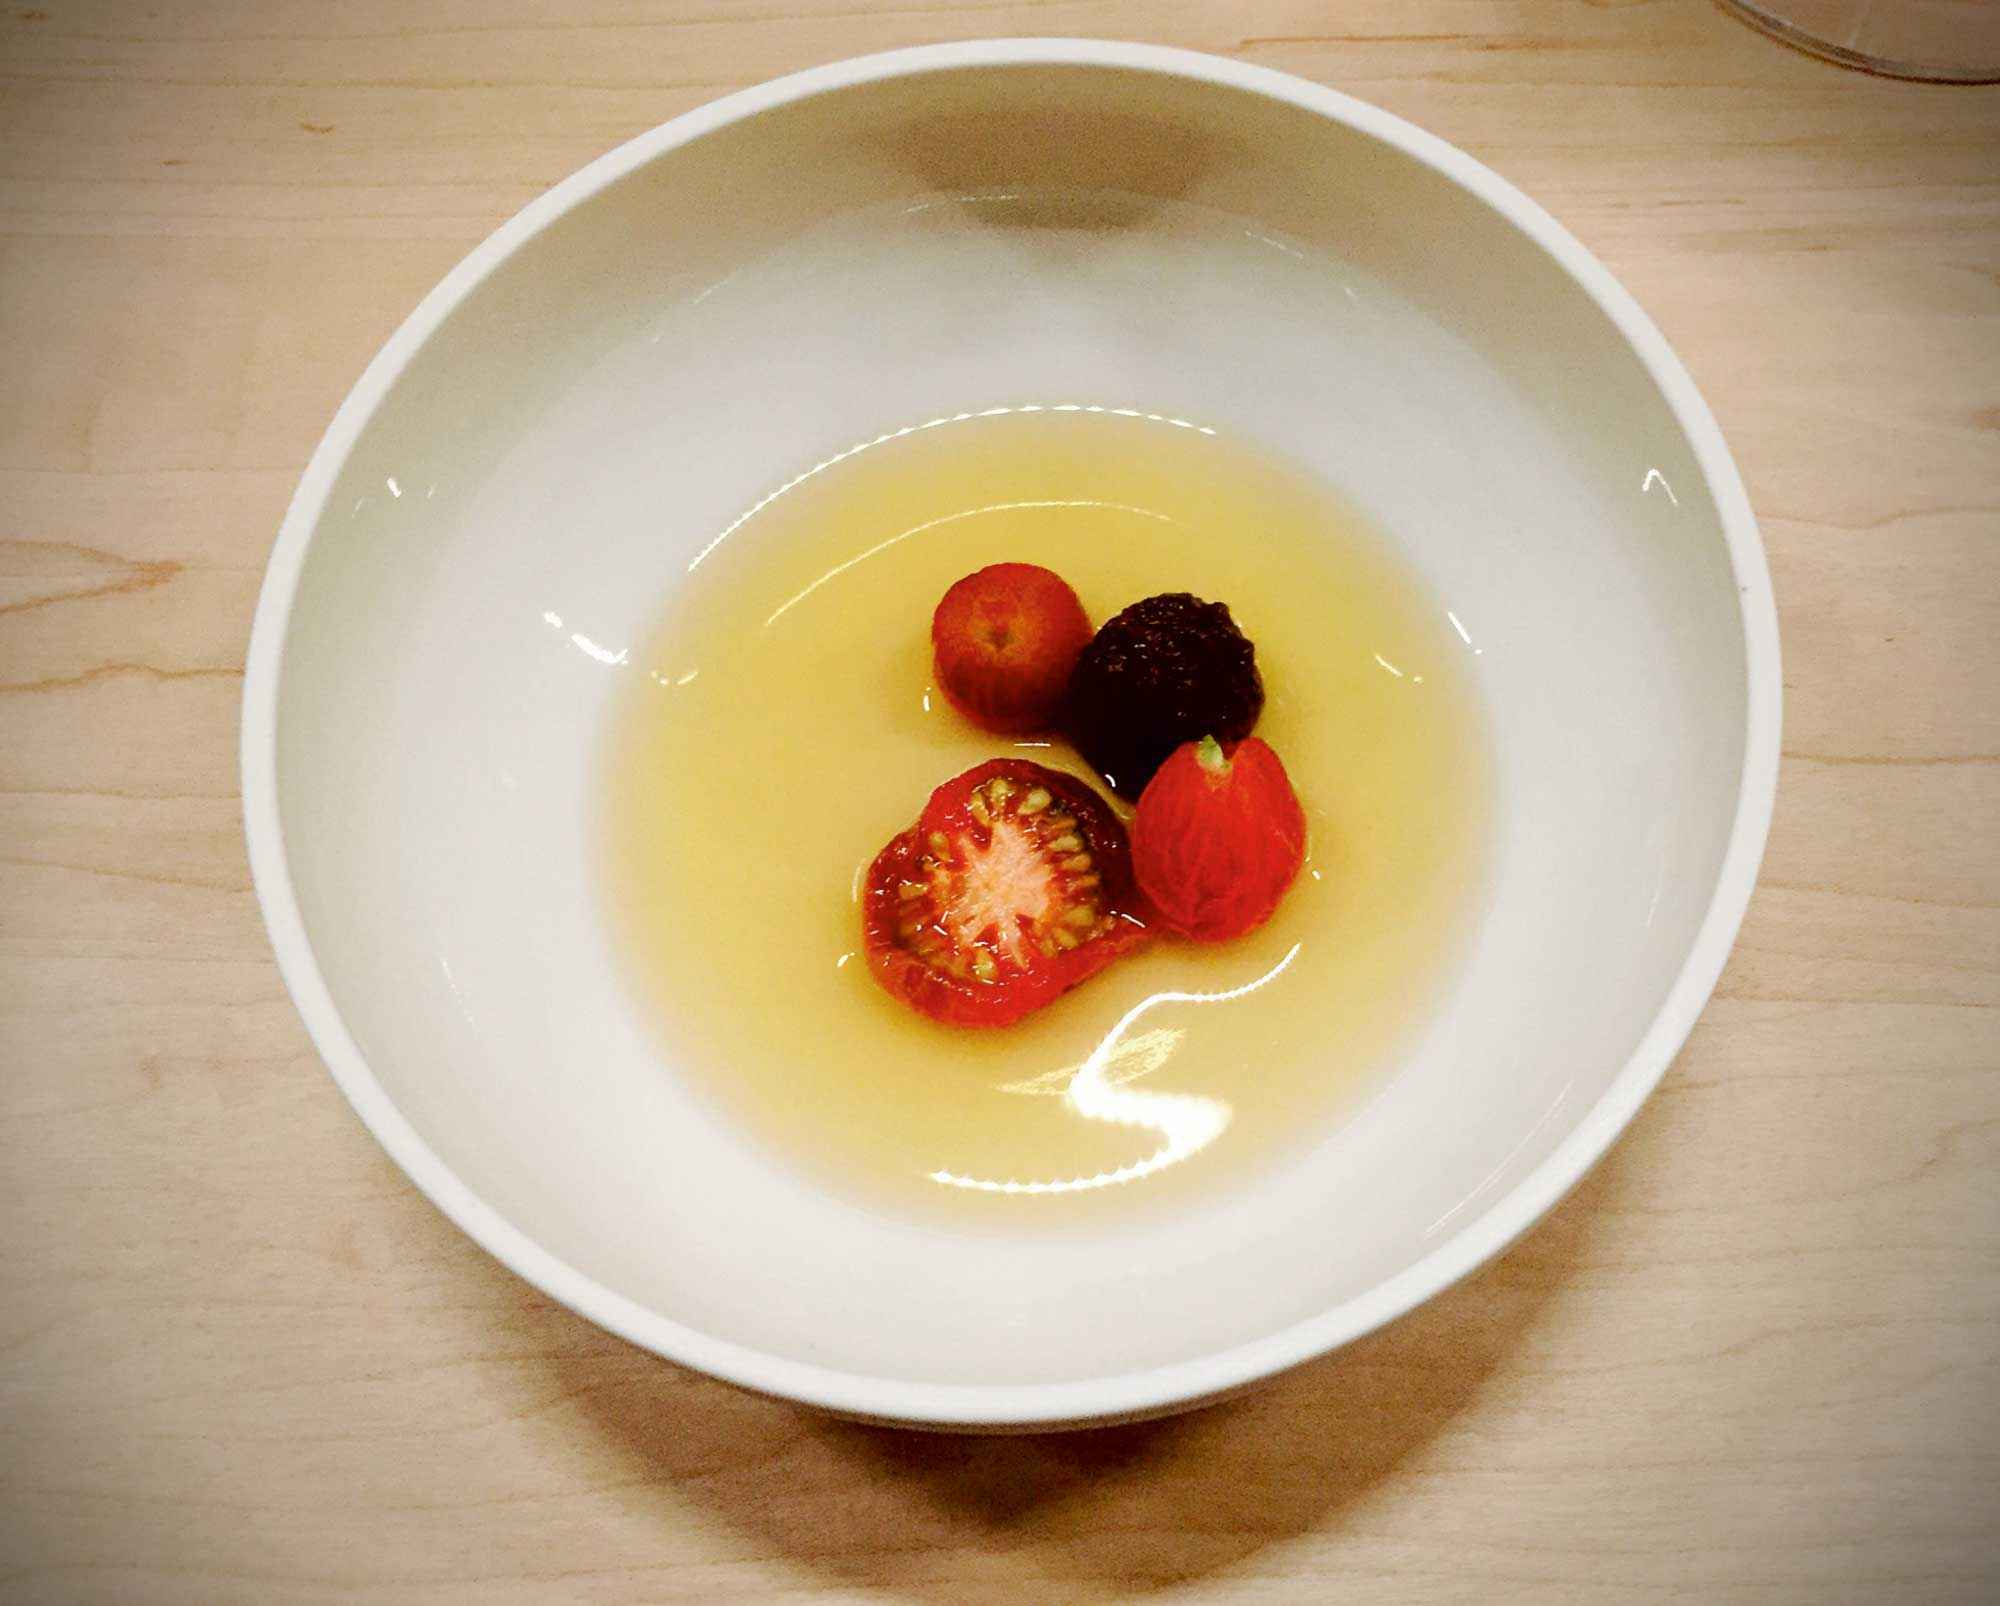 Tomaten in Dashi im Restaurant ernst